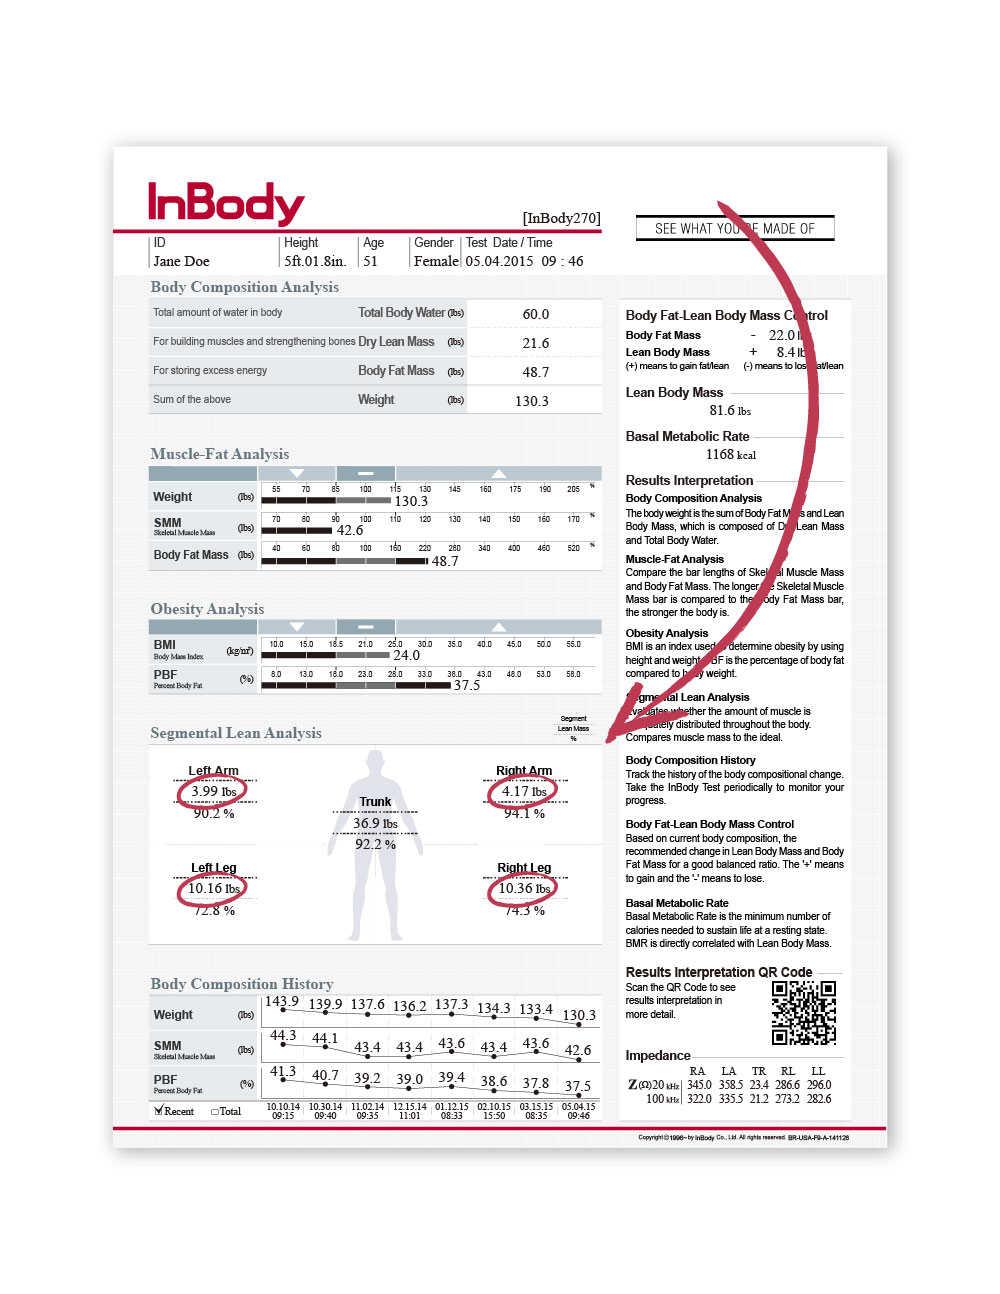 The InBody 270 result sheet changes in segmental lean analysis poundage